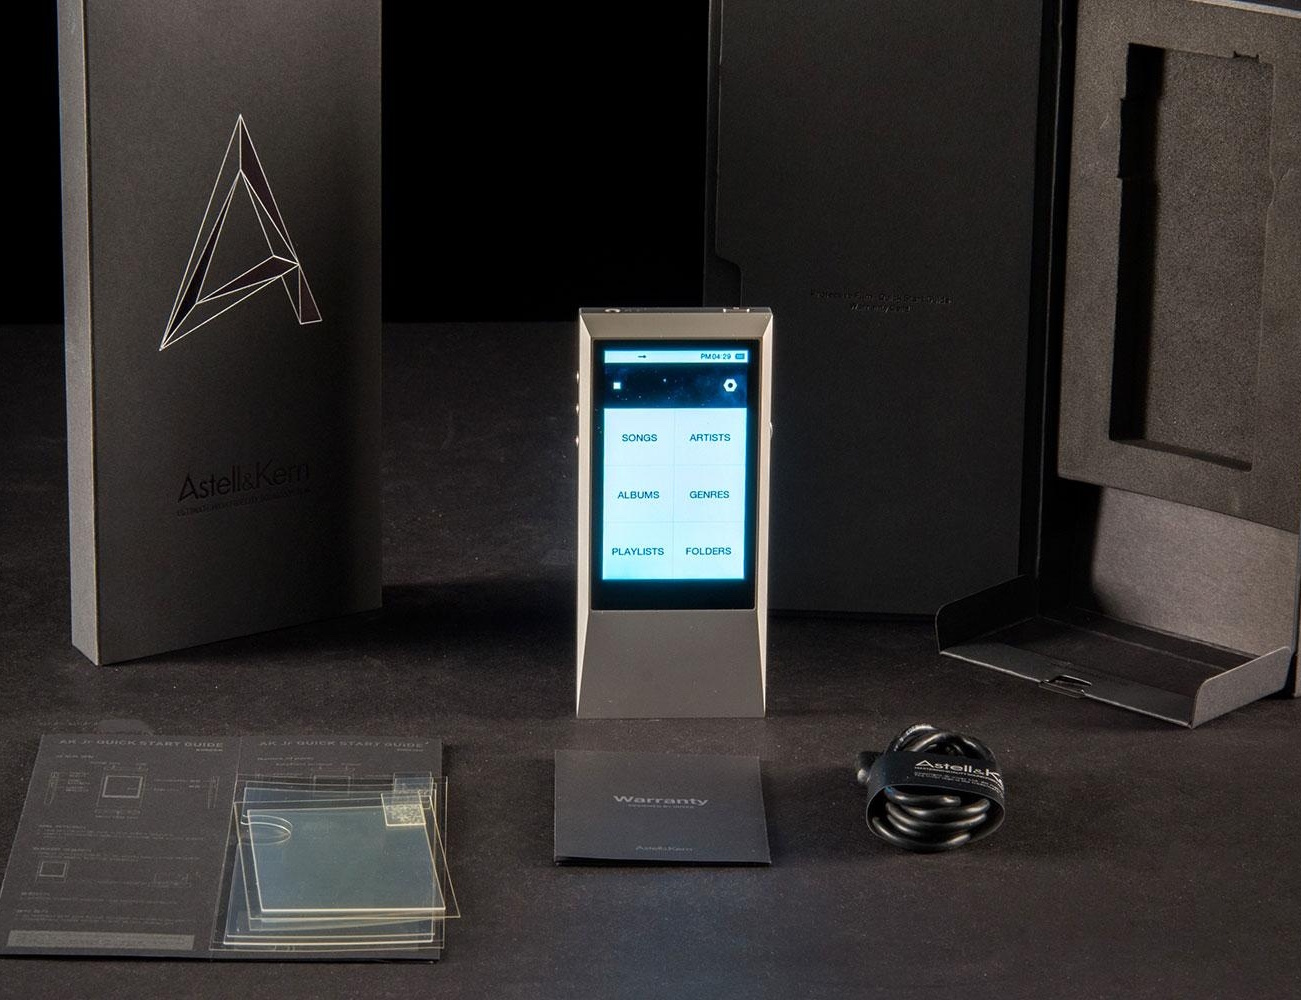 Astell & Kern AK Jr Hi-Res Music Player